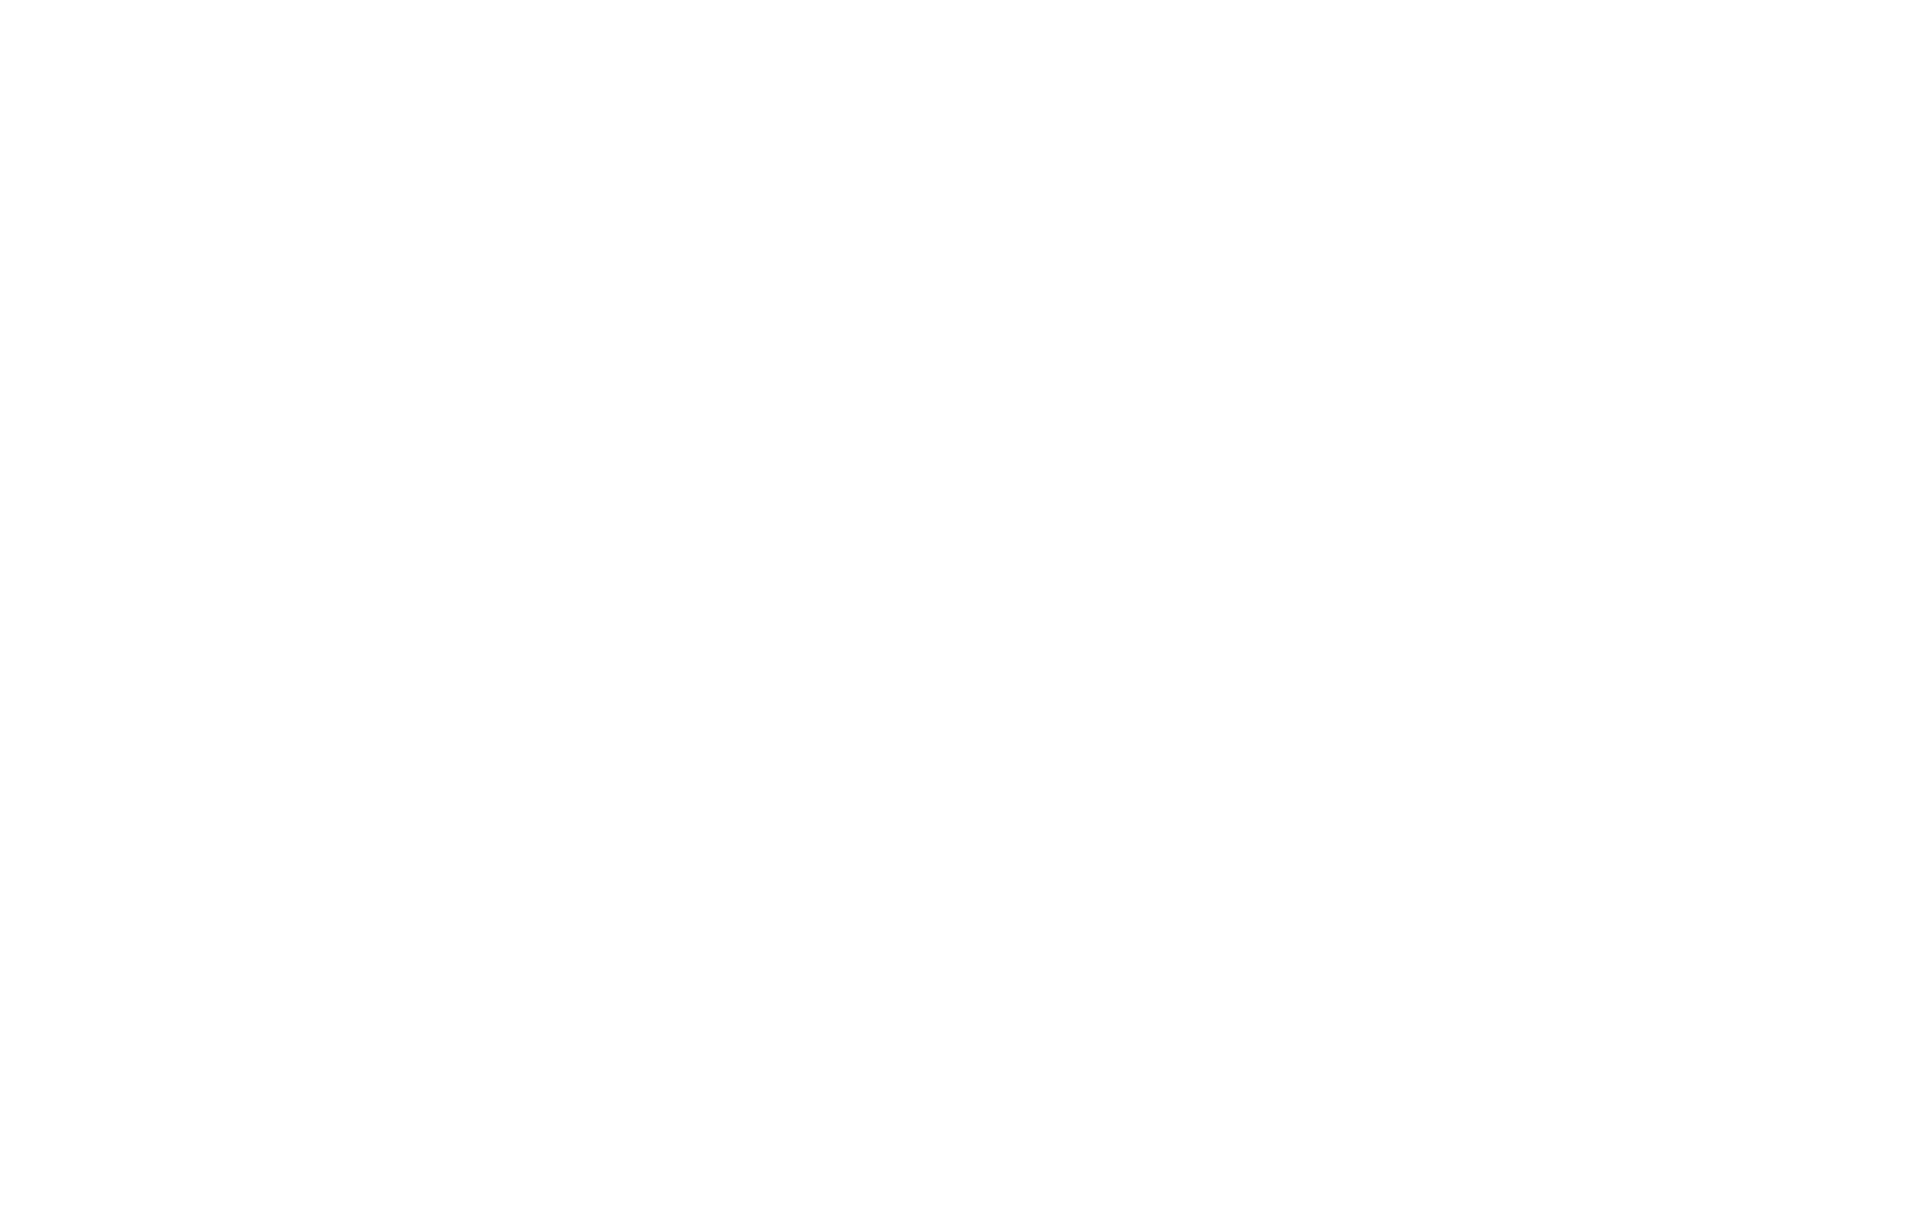 An illustration of a man and woman leaving a restaurant.